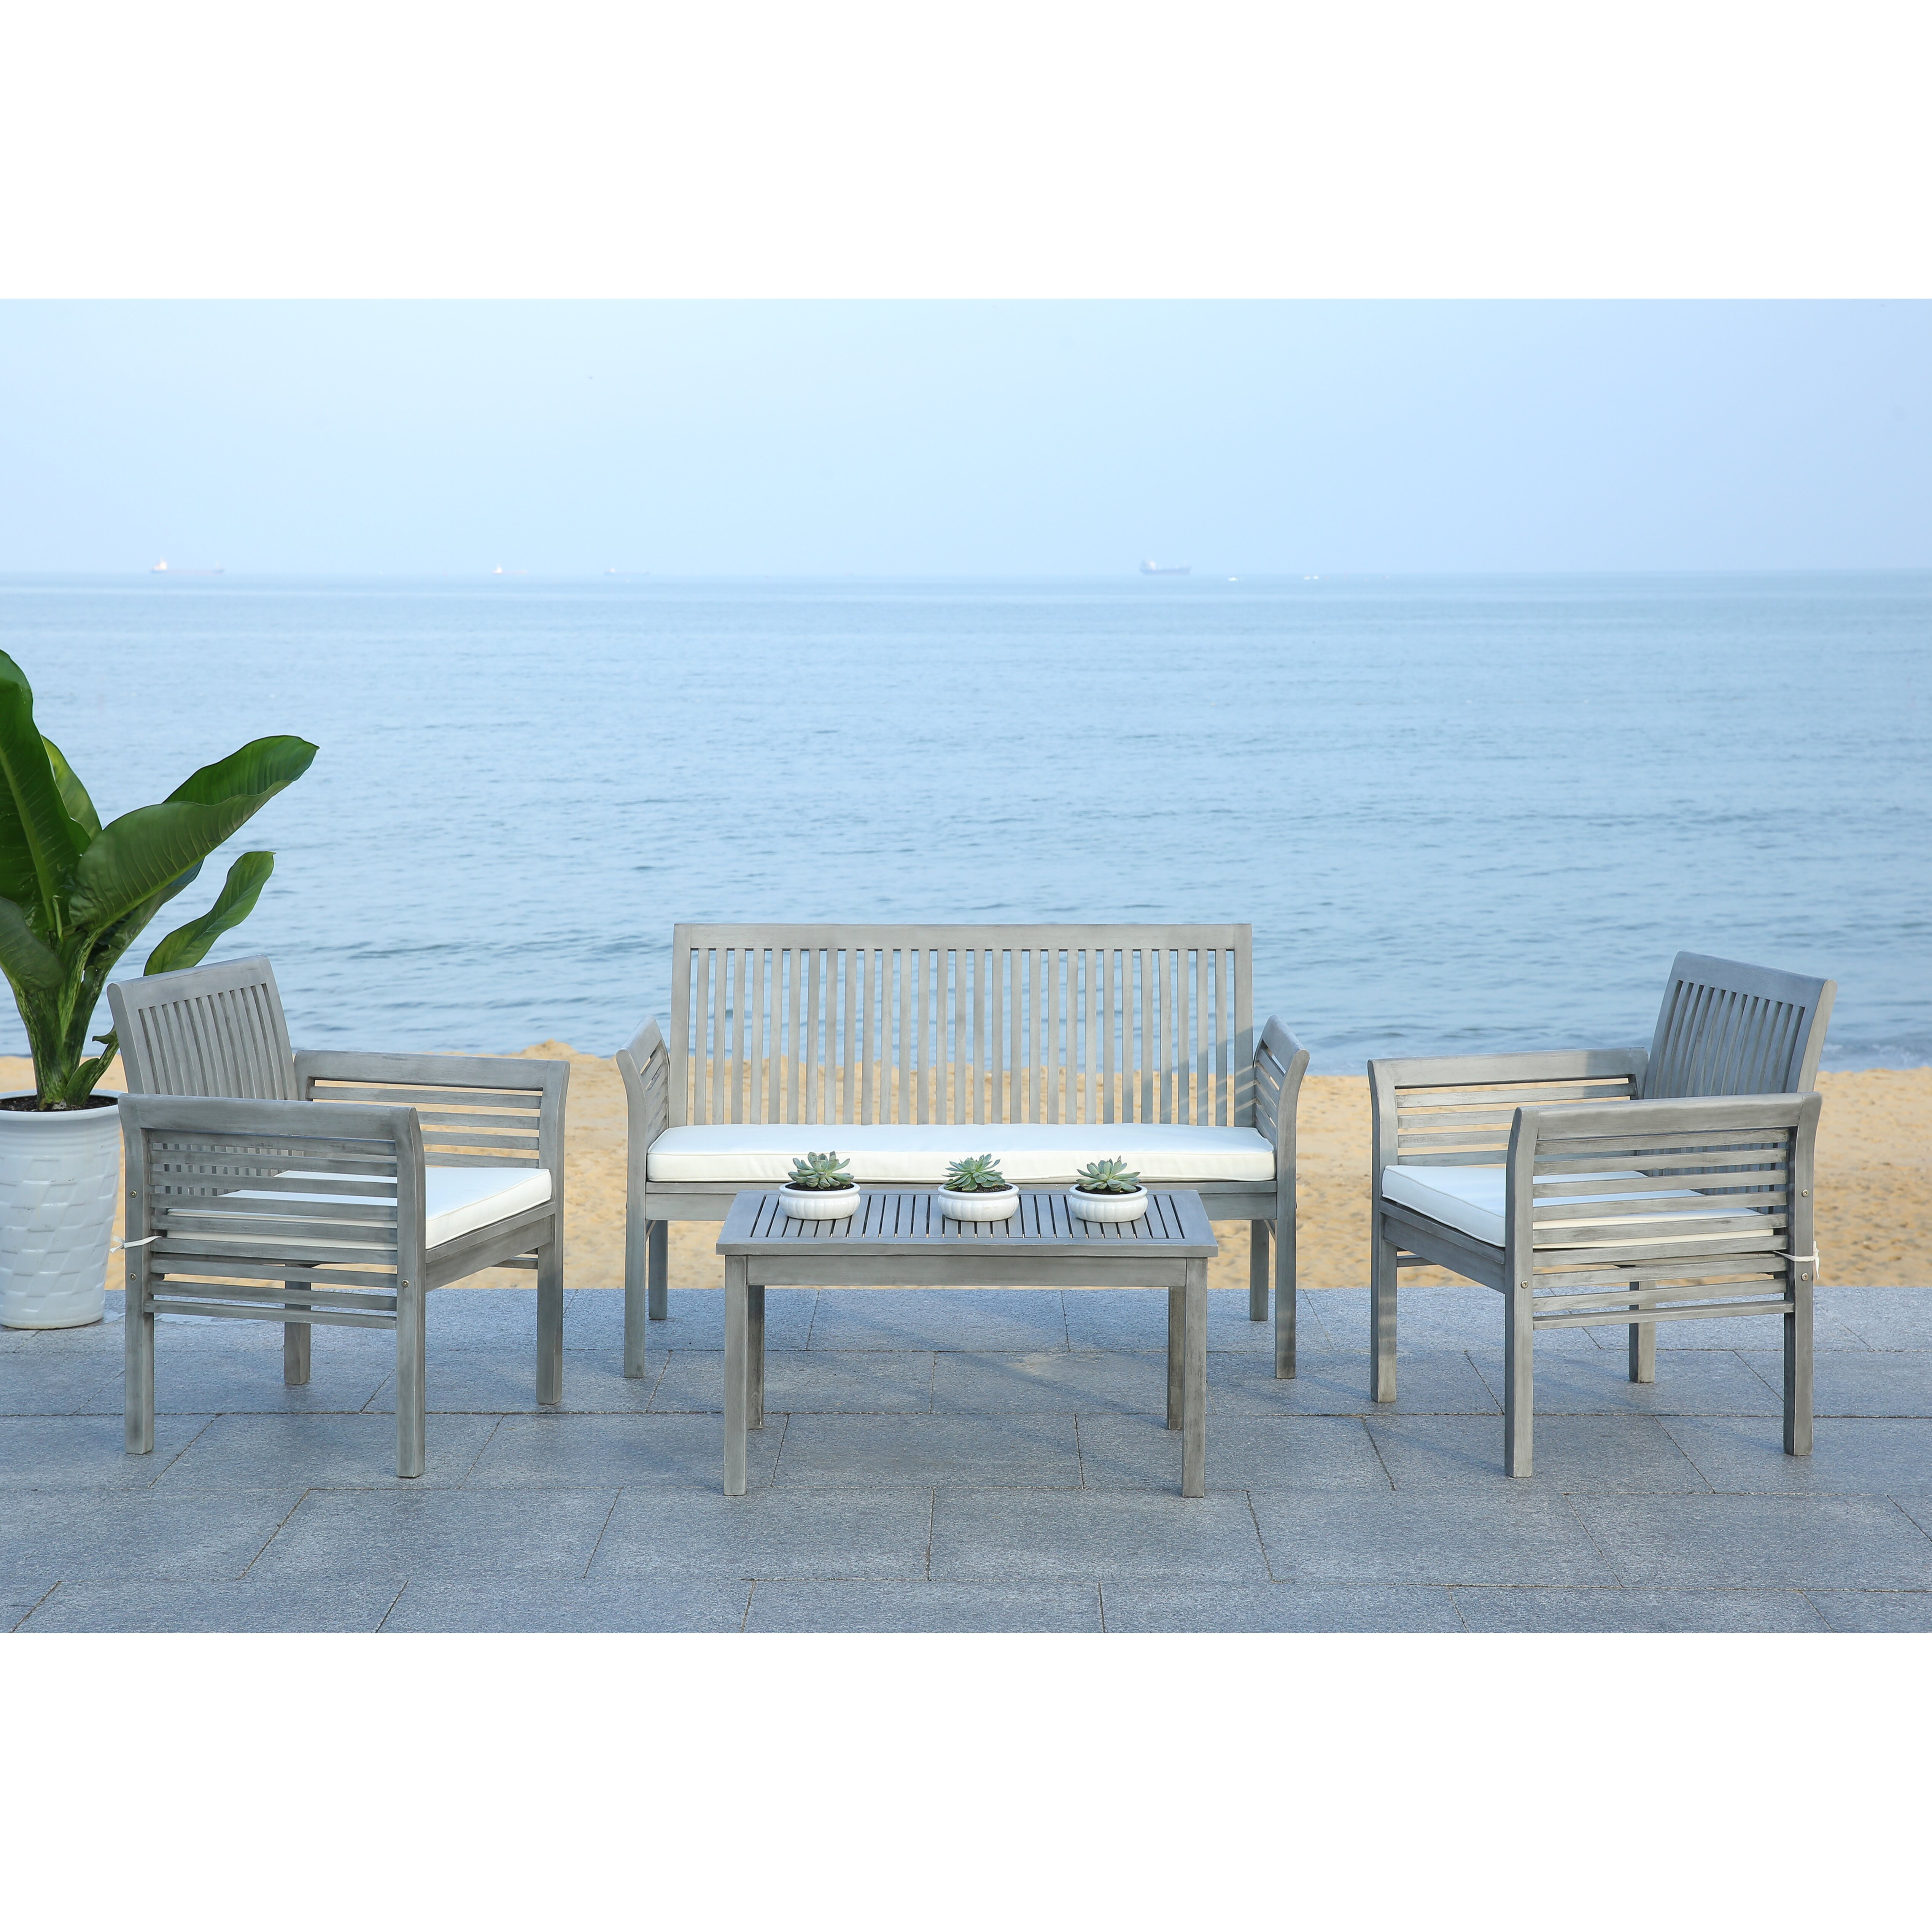 Beachcrest home tice 4 piece seating group with cushion for Outdoor furniture 4 piece